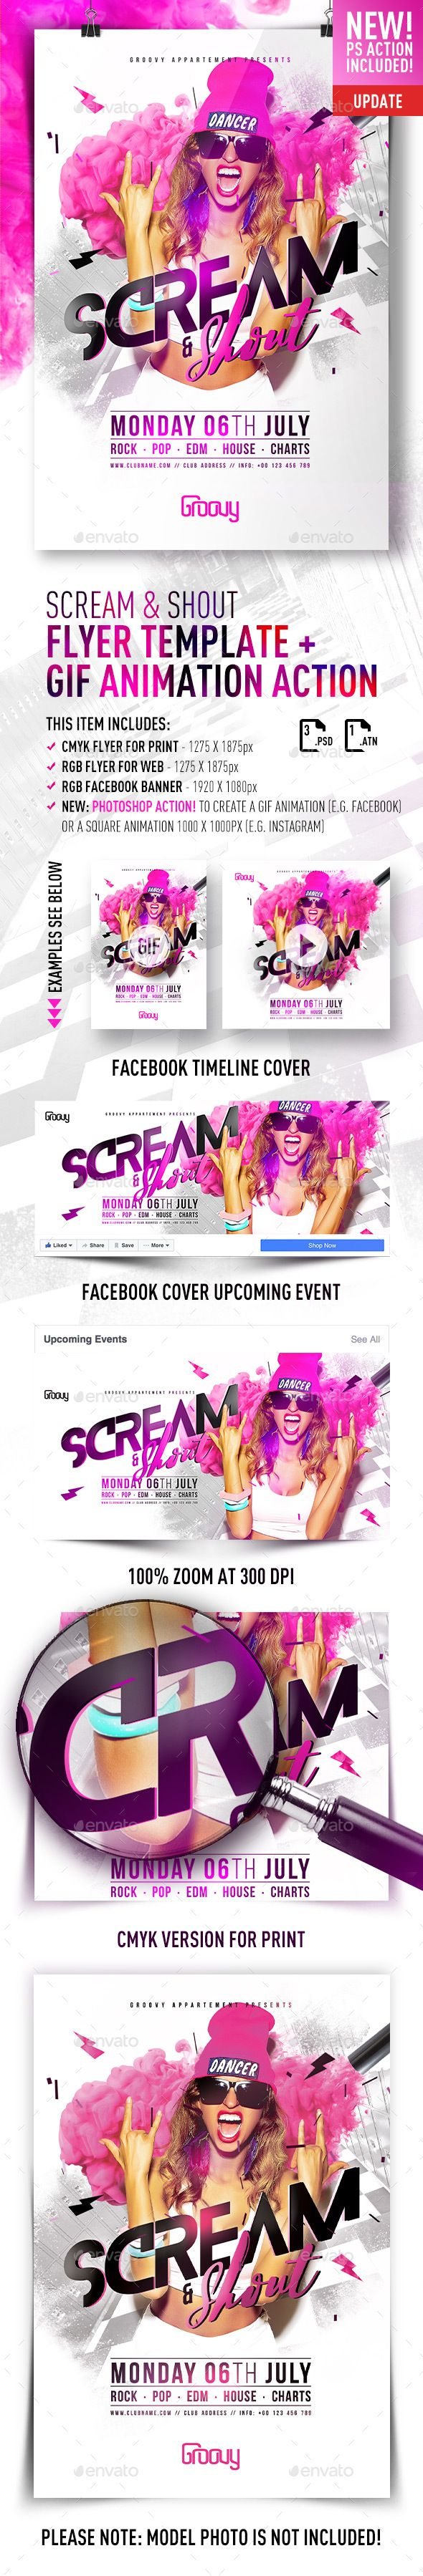 Scream & Shout Flyer Template + GIF Animation Action — Photoshop PSD #sexy #dj • Download ➝ https://graphicriver.net/item/scream-shout-flyer/19403969?ref=pxcr